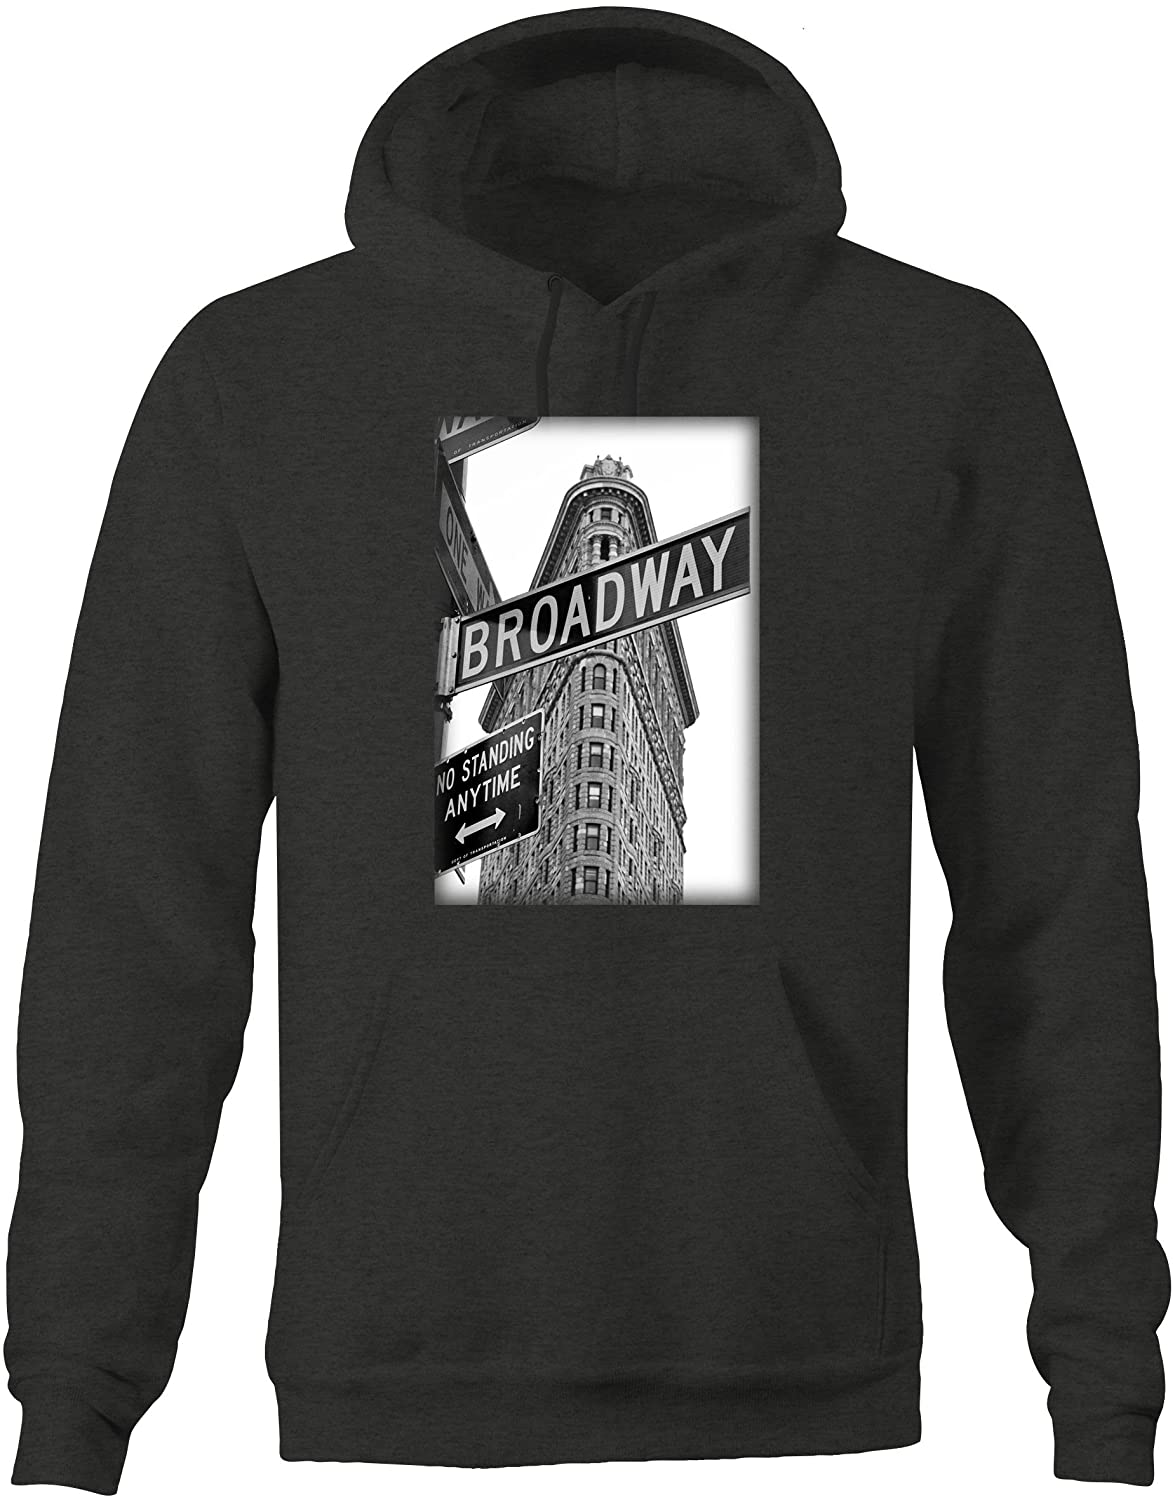 Broadway New York Building Sign Vintage Retro NYC Graphic Hoodie for Men